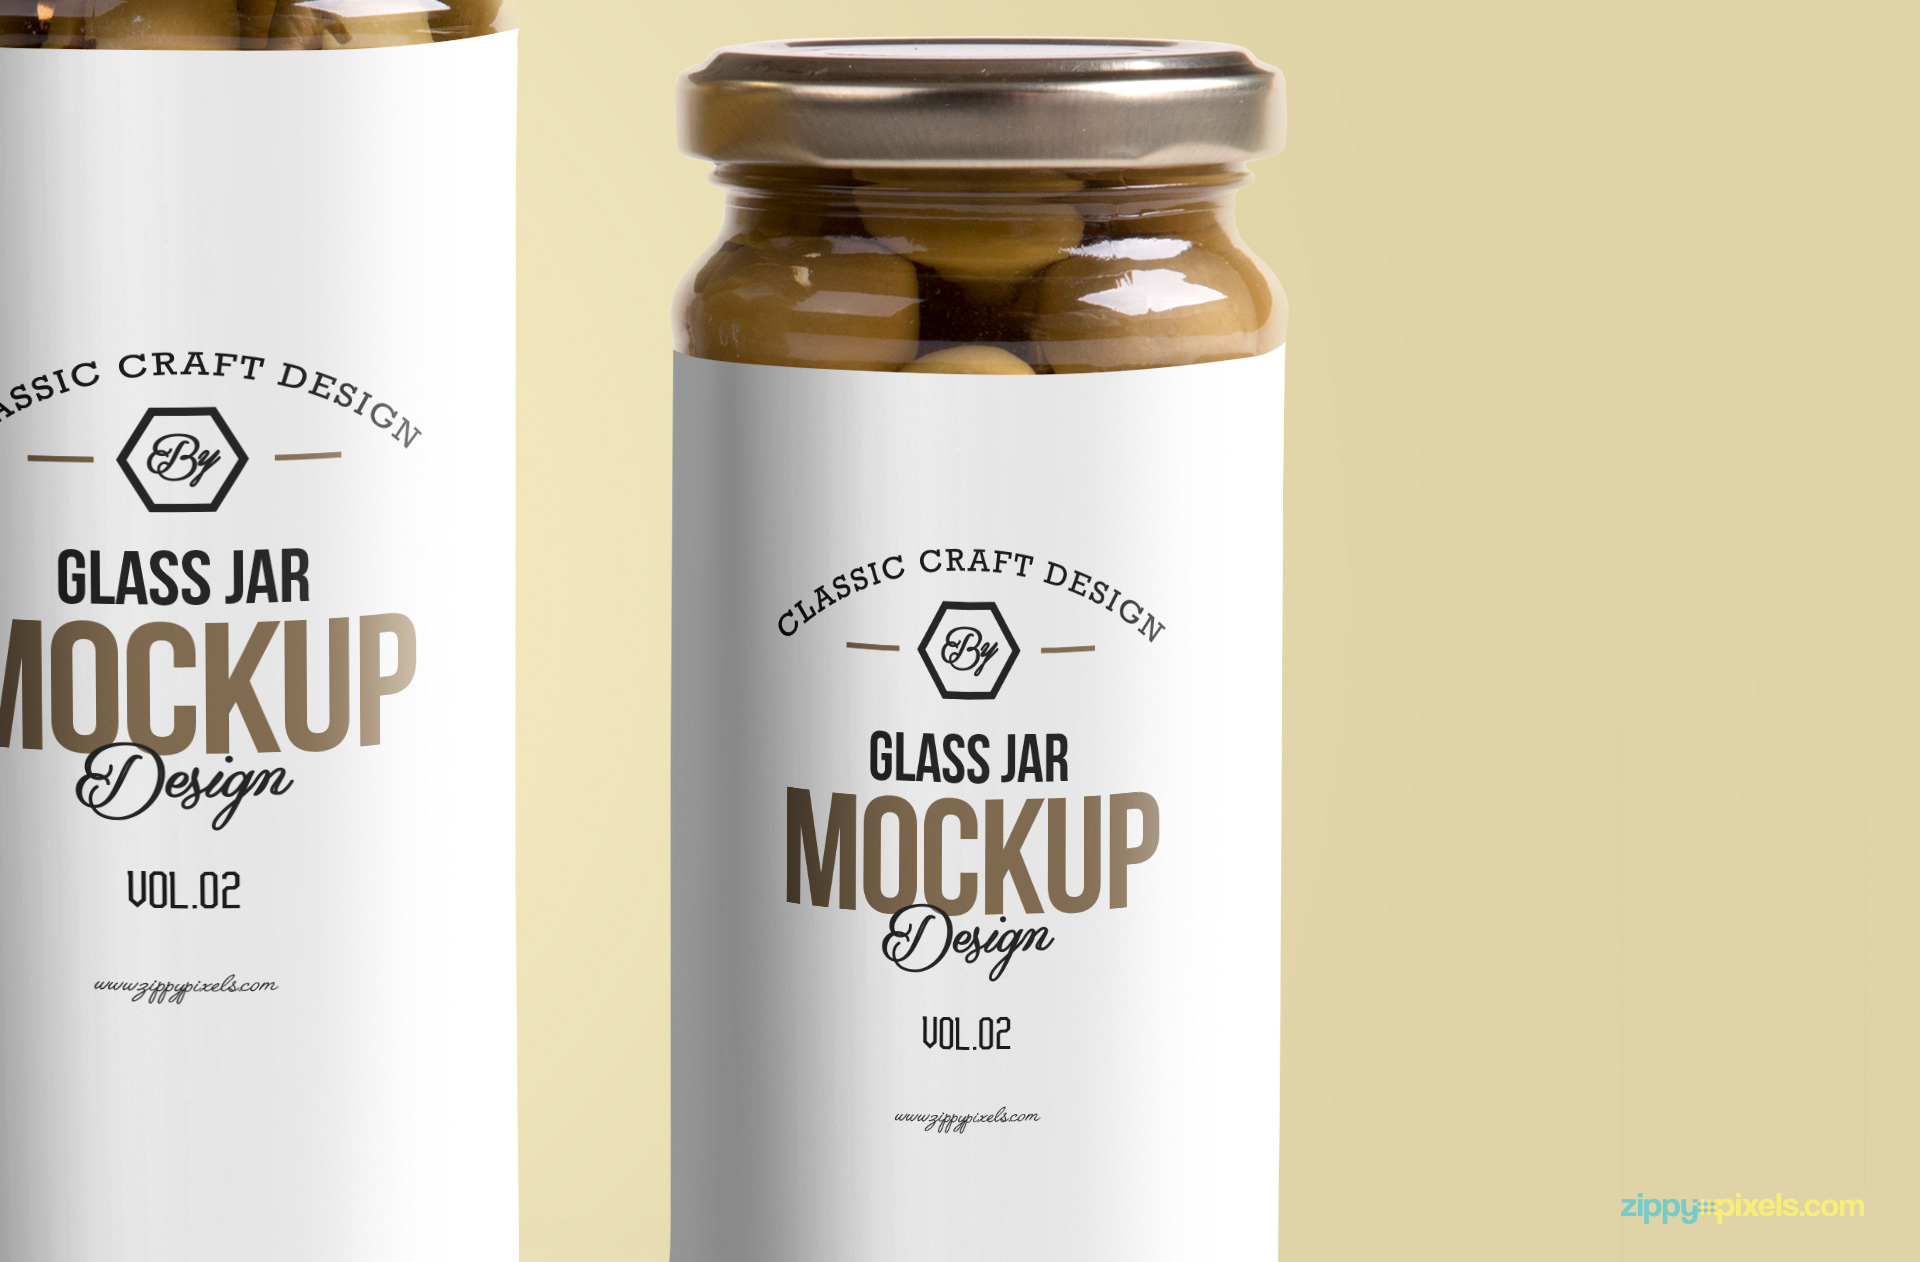 glass jar design mockup for free